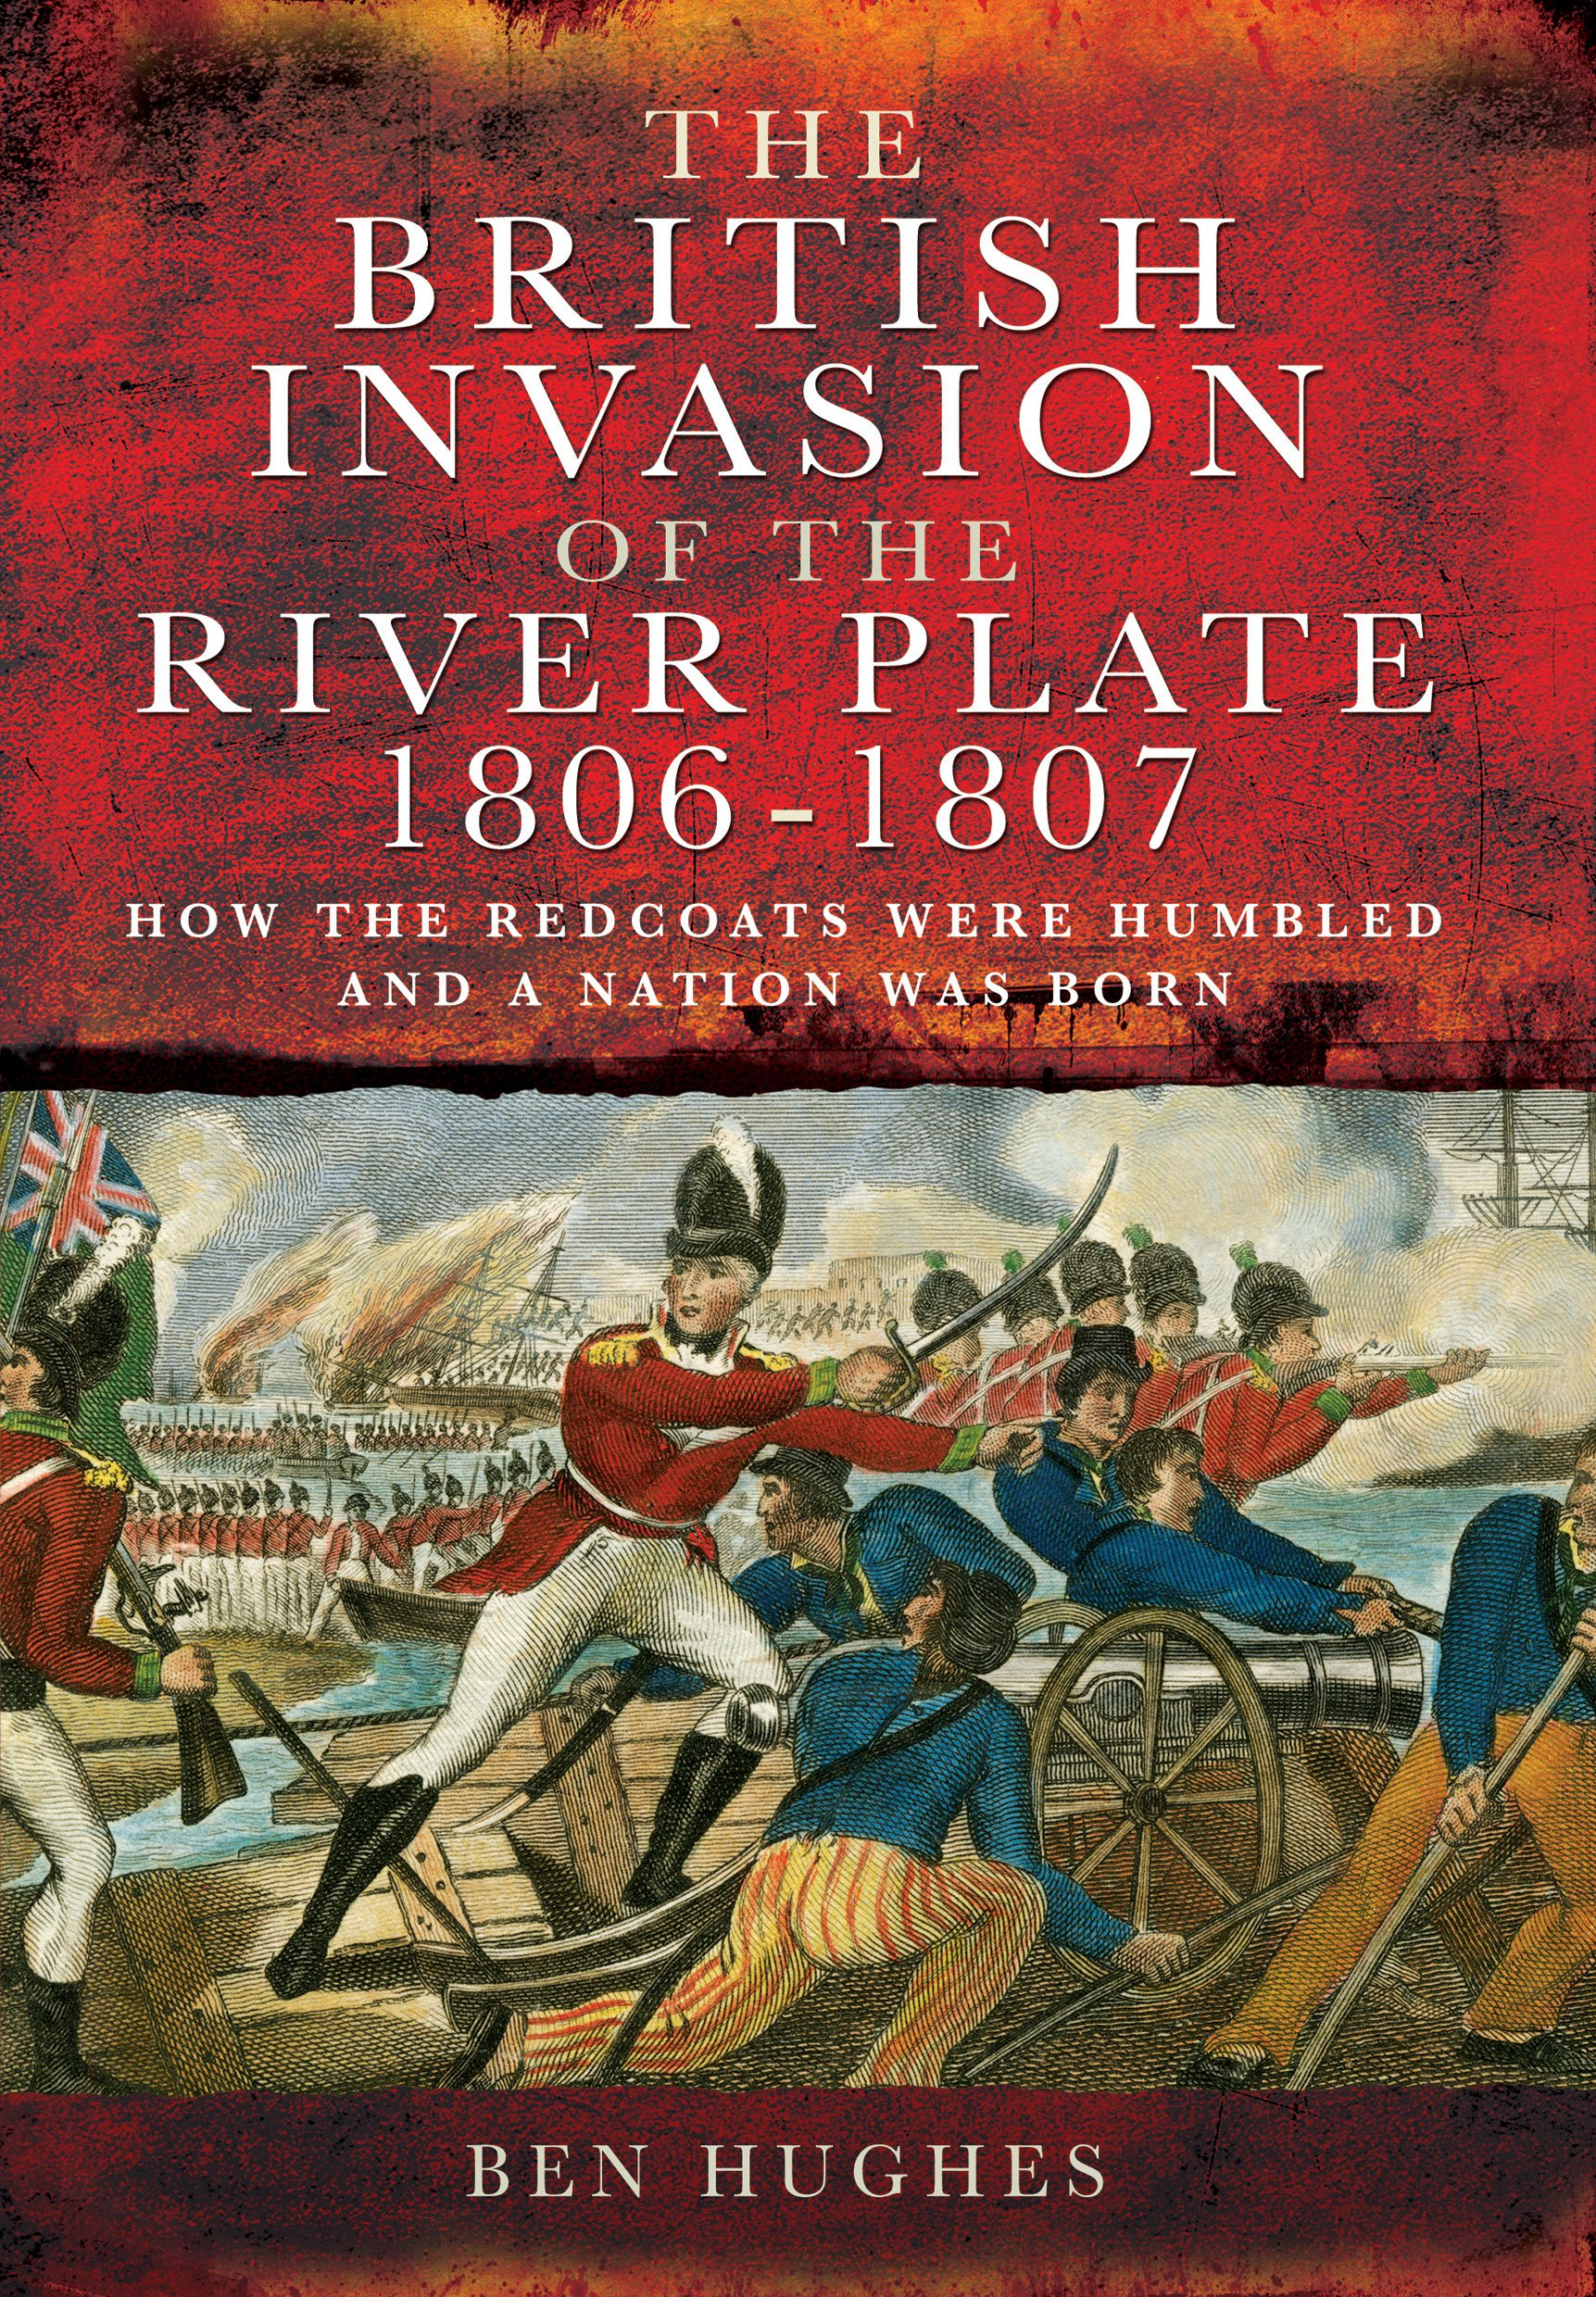 The British Invasion of the River Plate 1806-1807: How the Redcoats Were Humbled and a Nation Was Born: Amazon.es: Ben Hughes: Libros en idiomas extranjeros